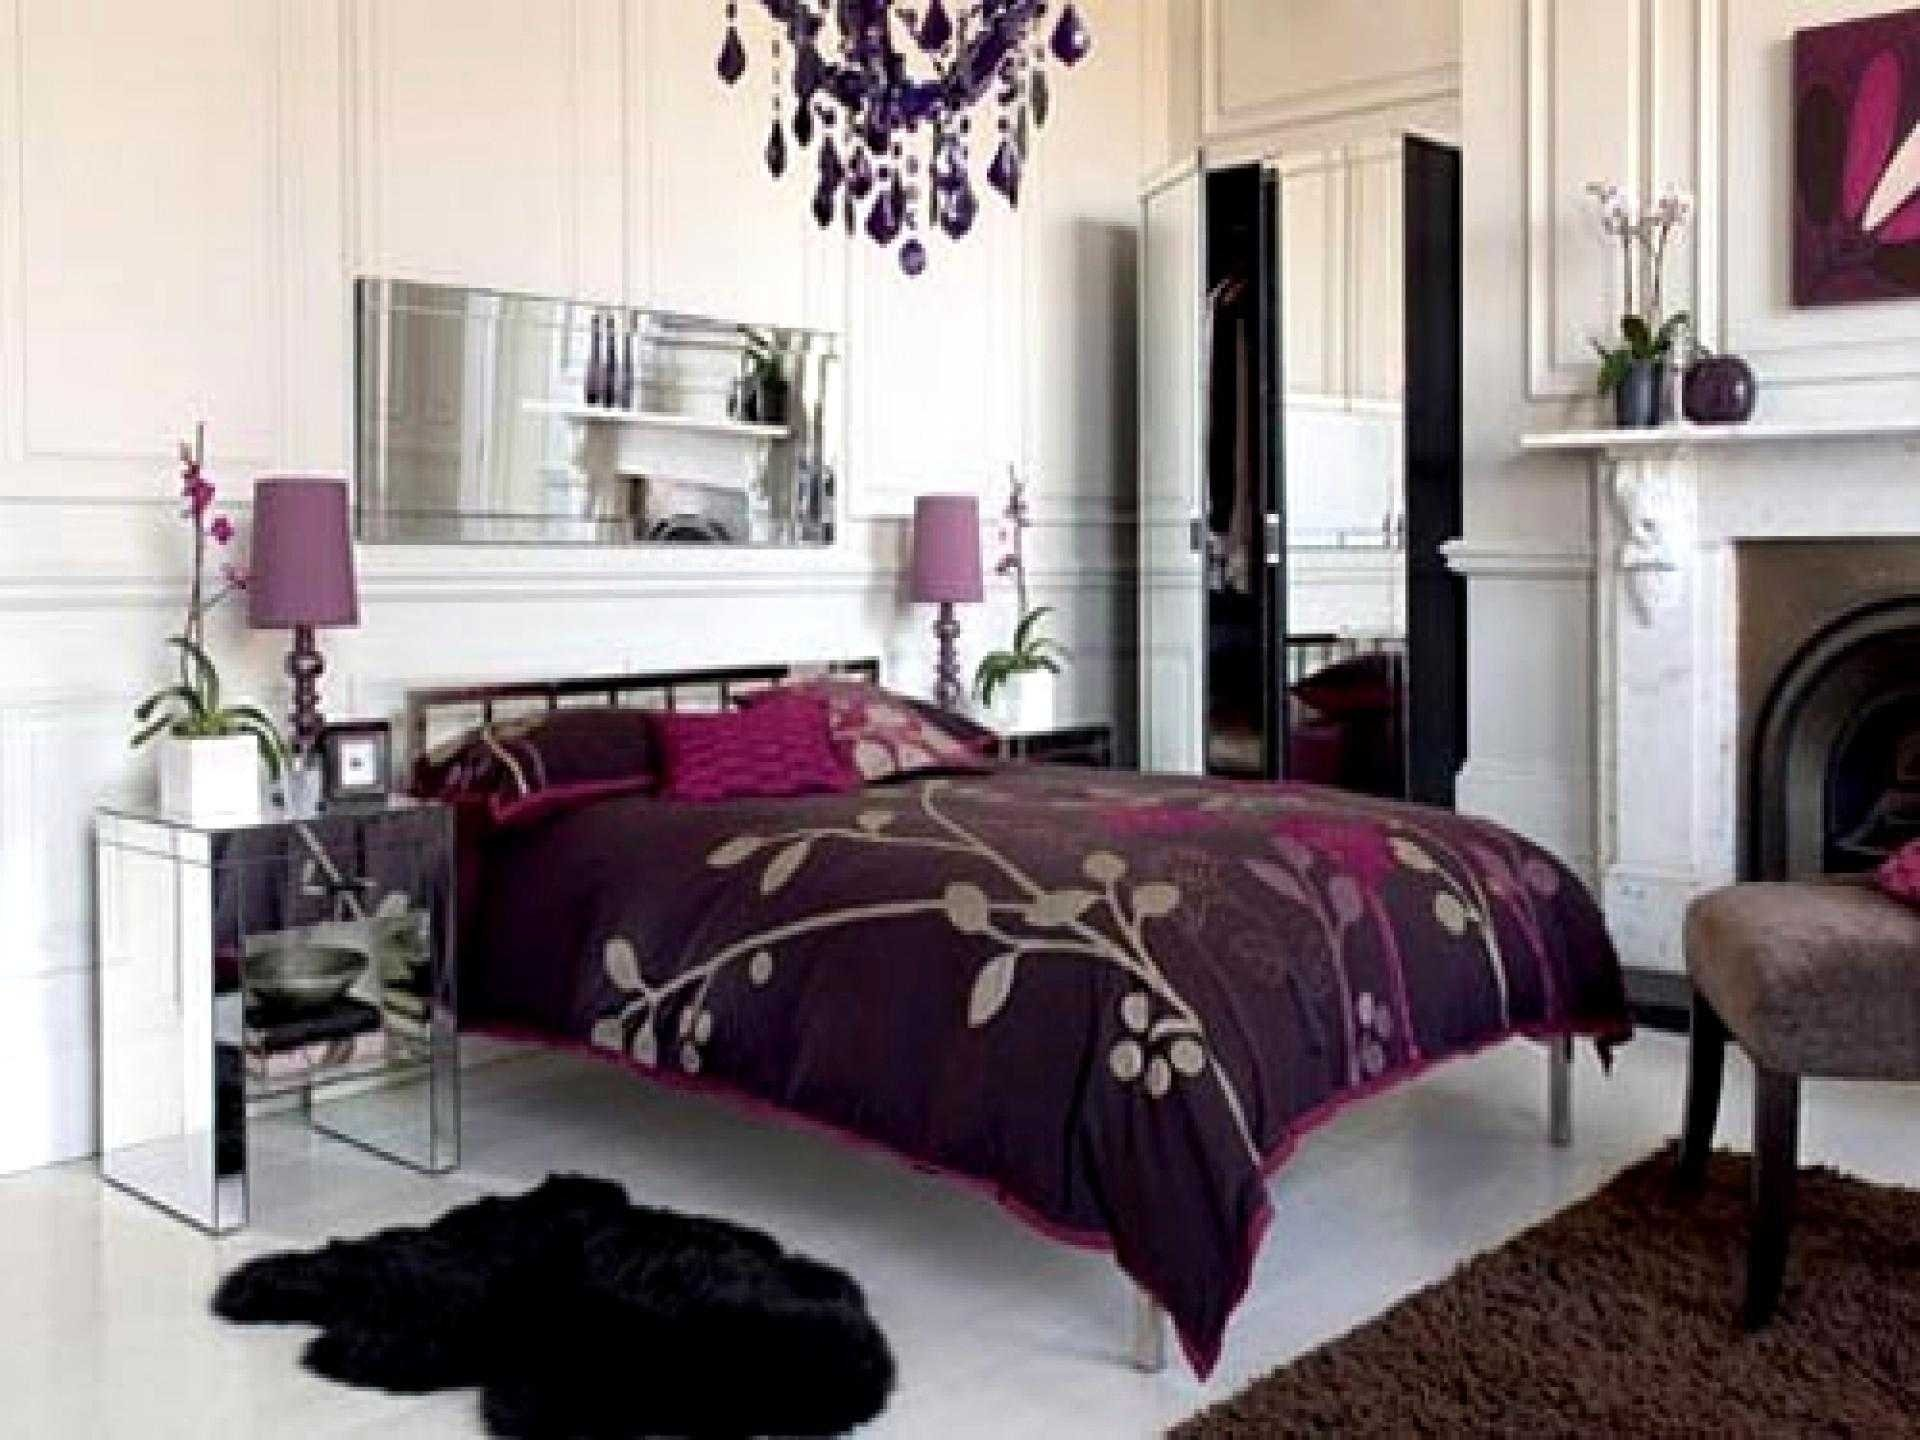 10 Fabulous Purple And Black Bedroom Ideas enchanting purple grey black bedroom ideas with improbable pictures